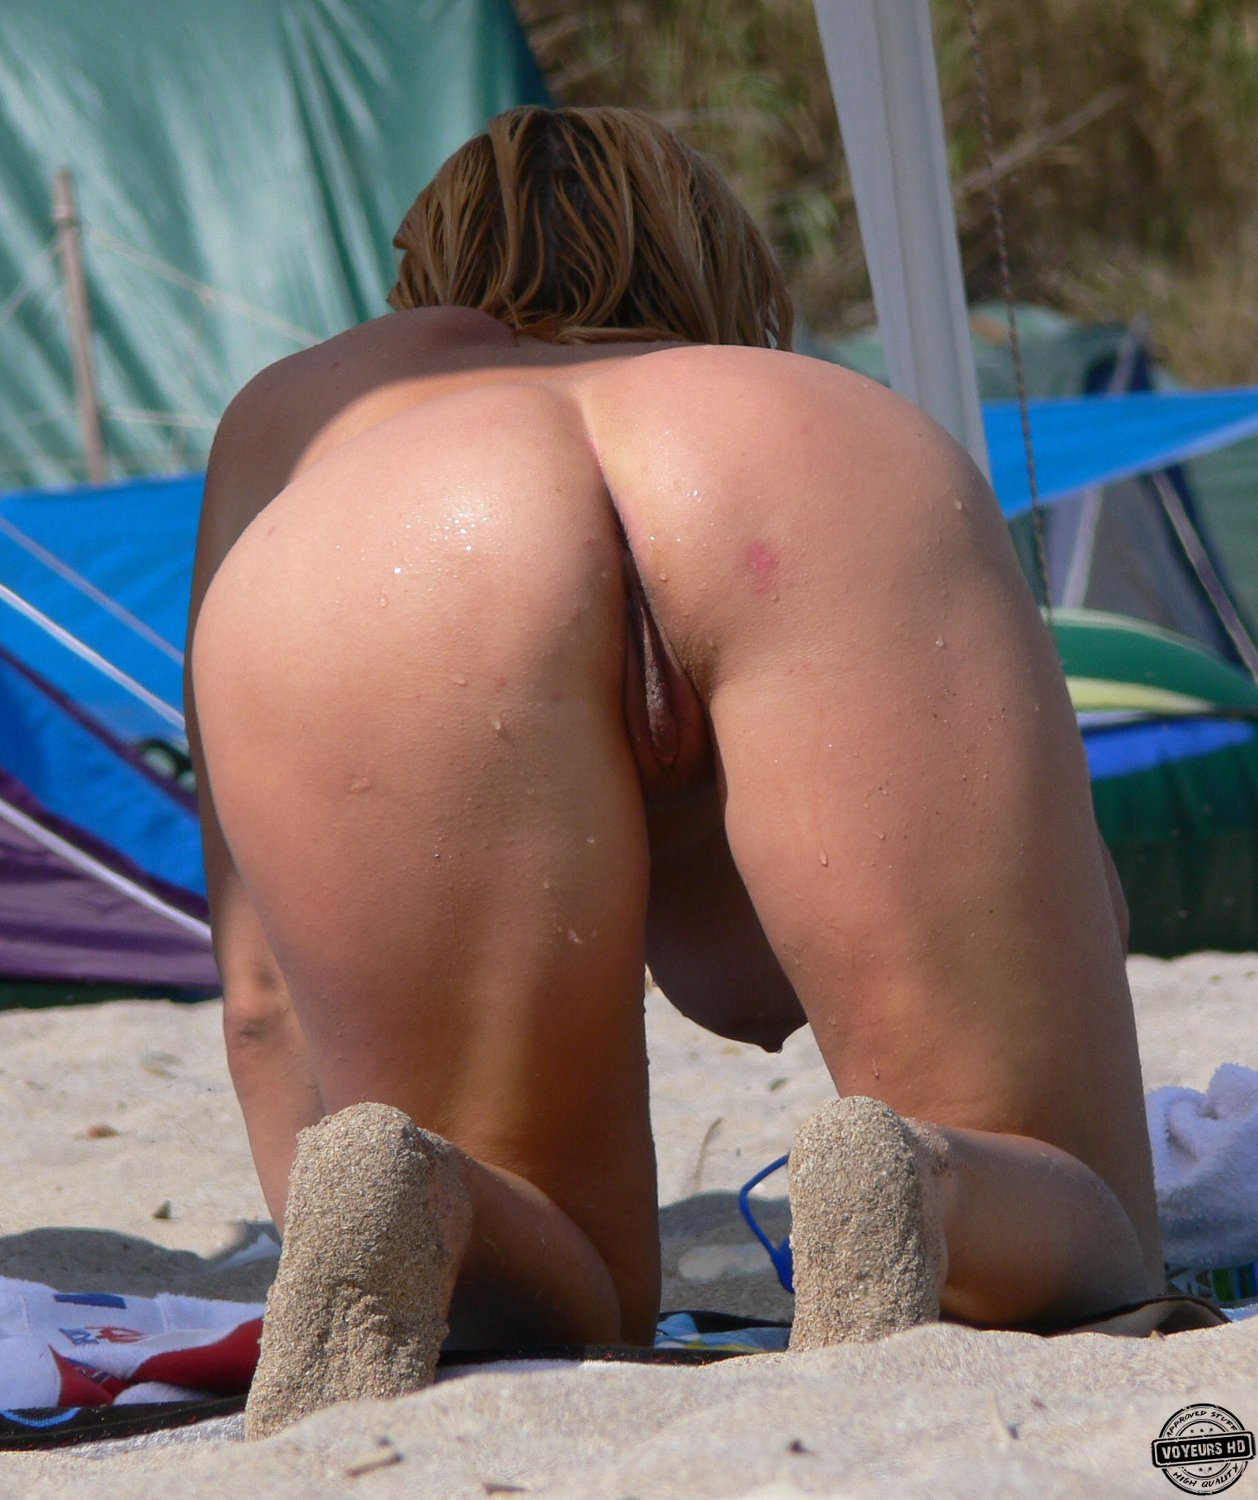 Beach Pussies - Voyeur Videos